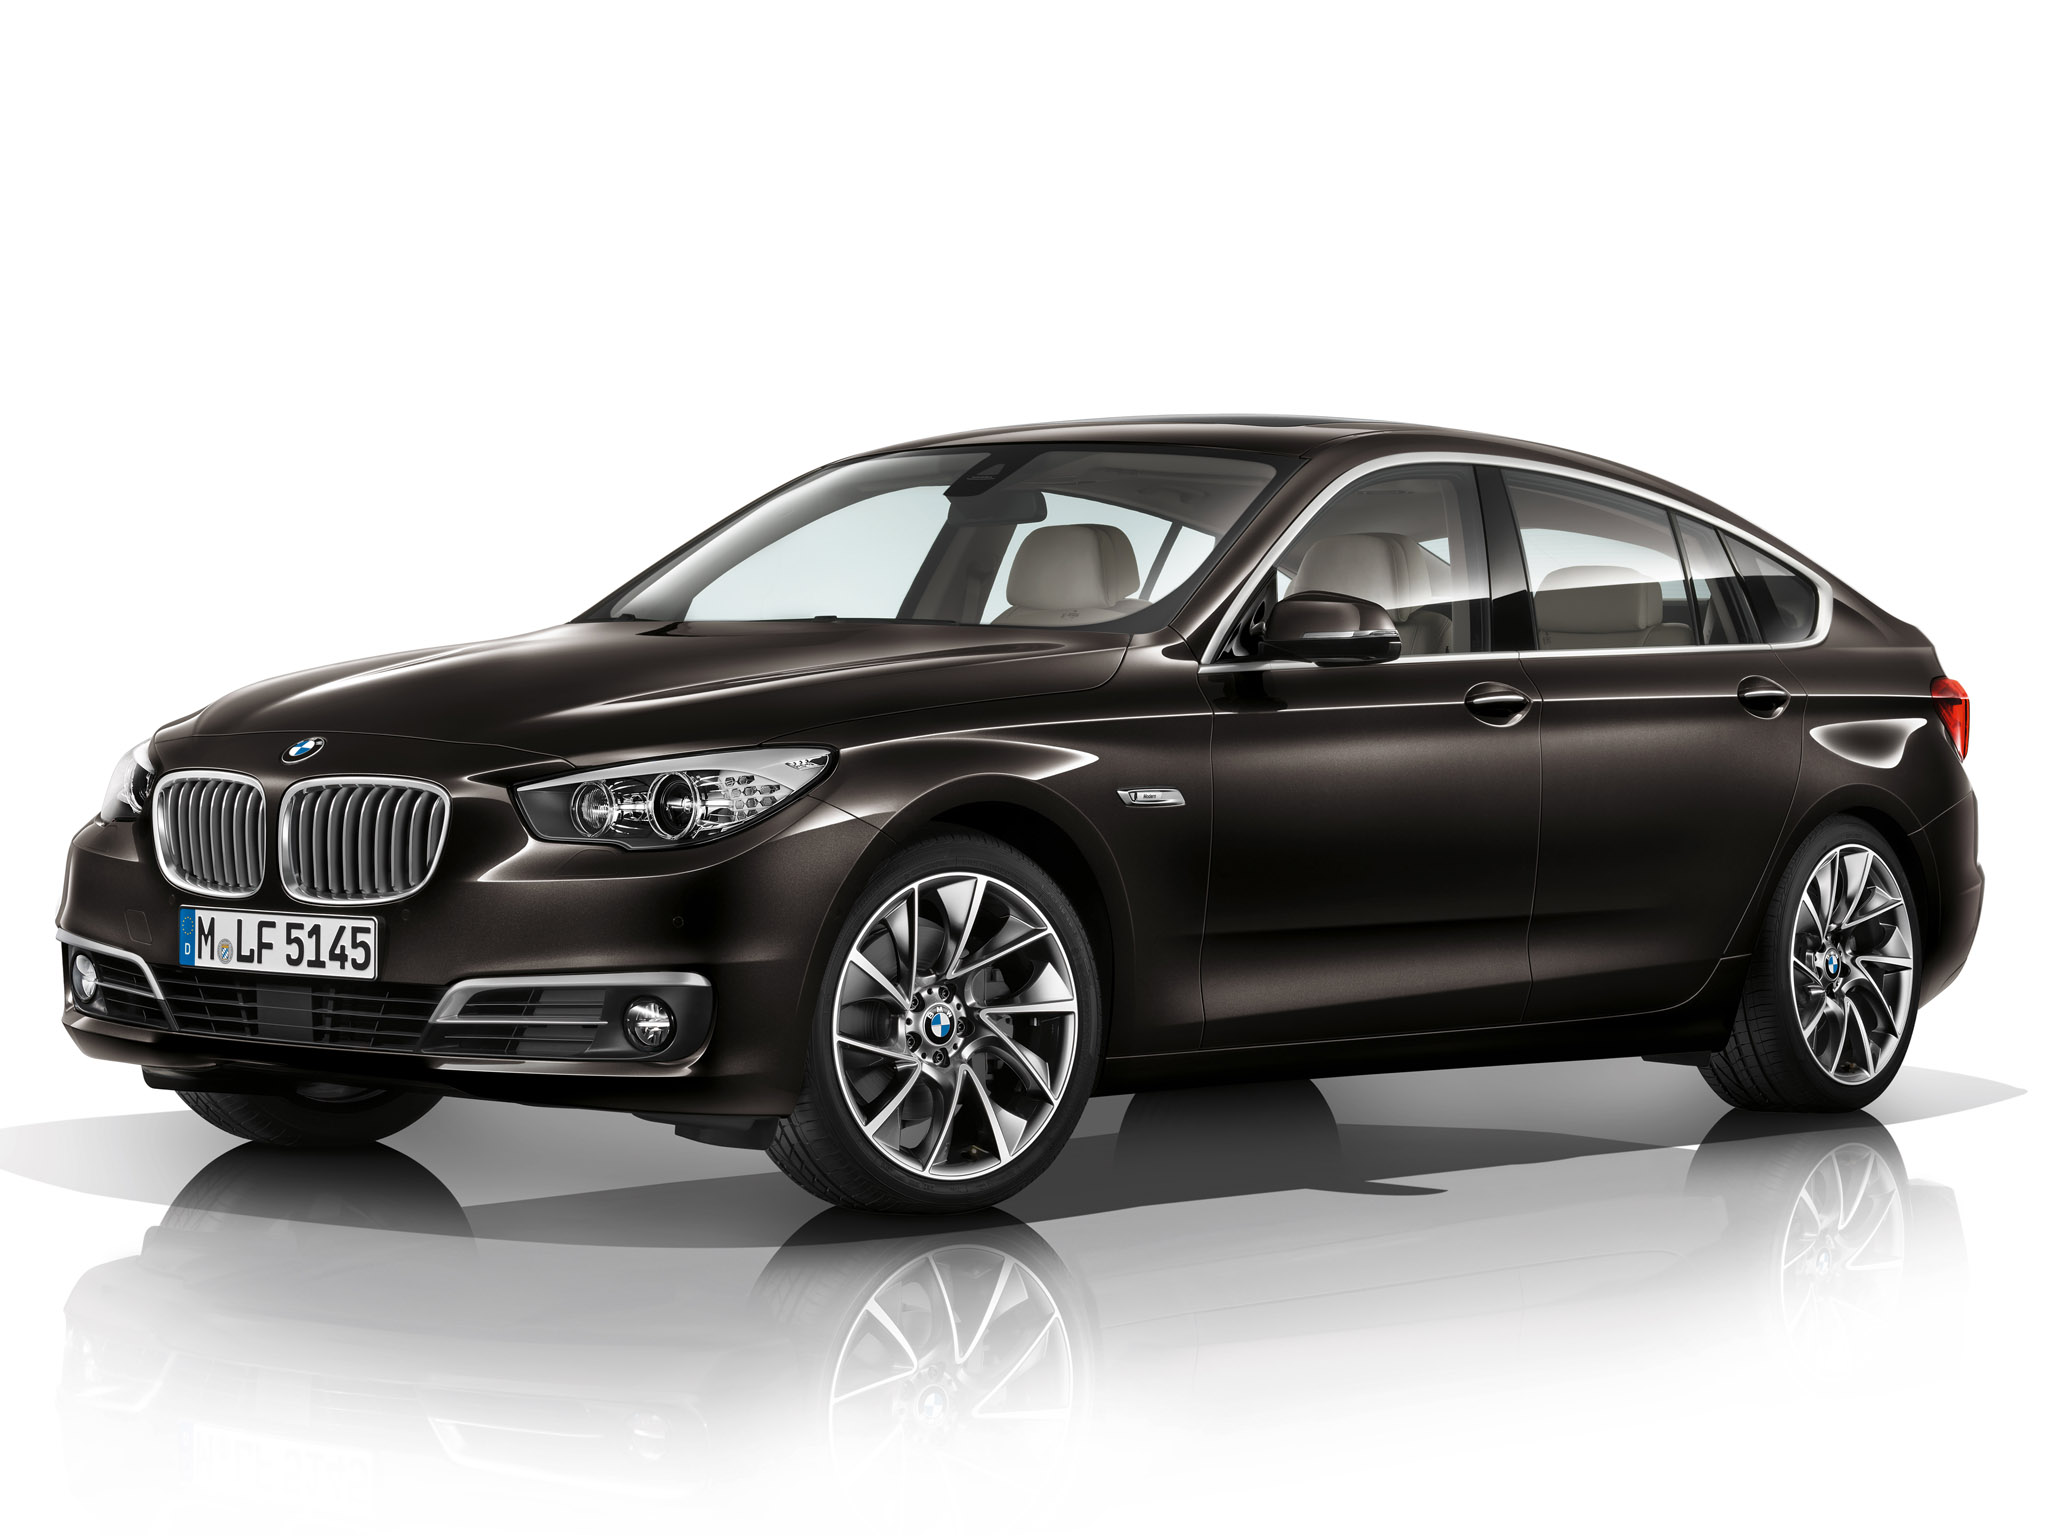 2013 BMW 5-serie Gran Turismo Hatchback 5-door